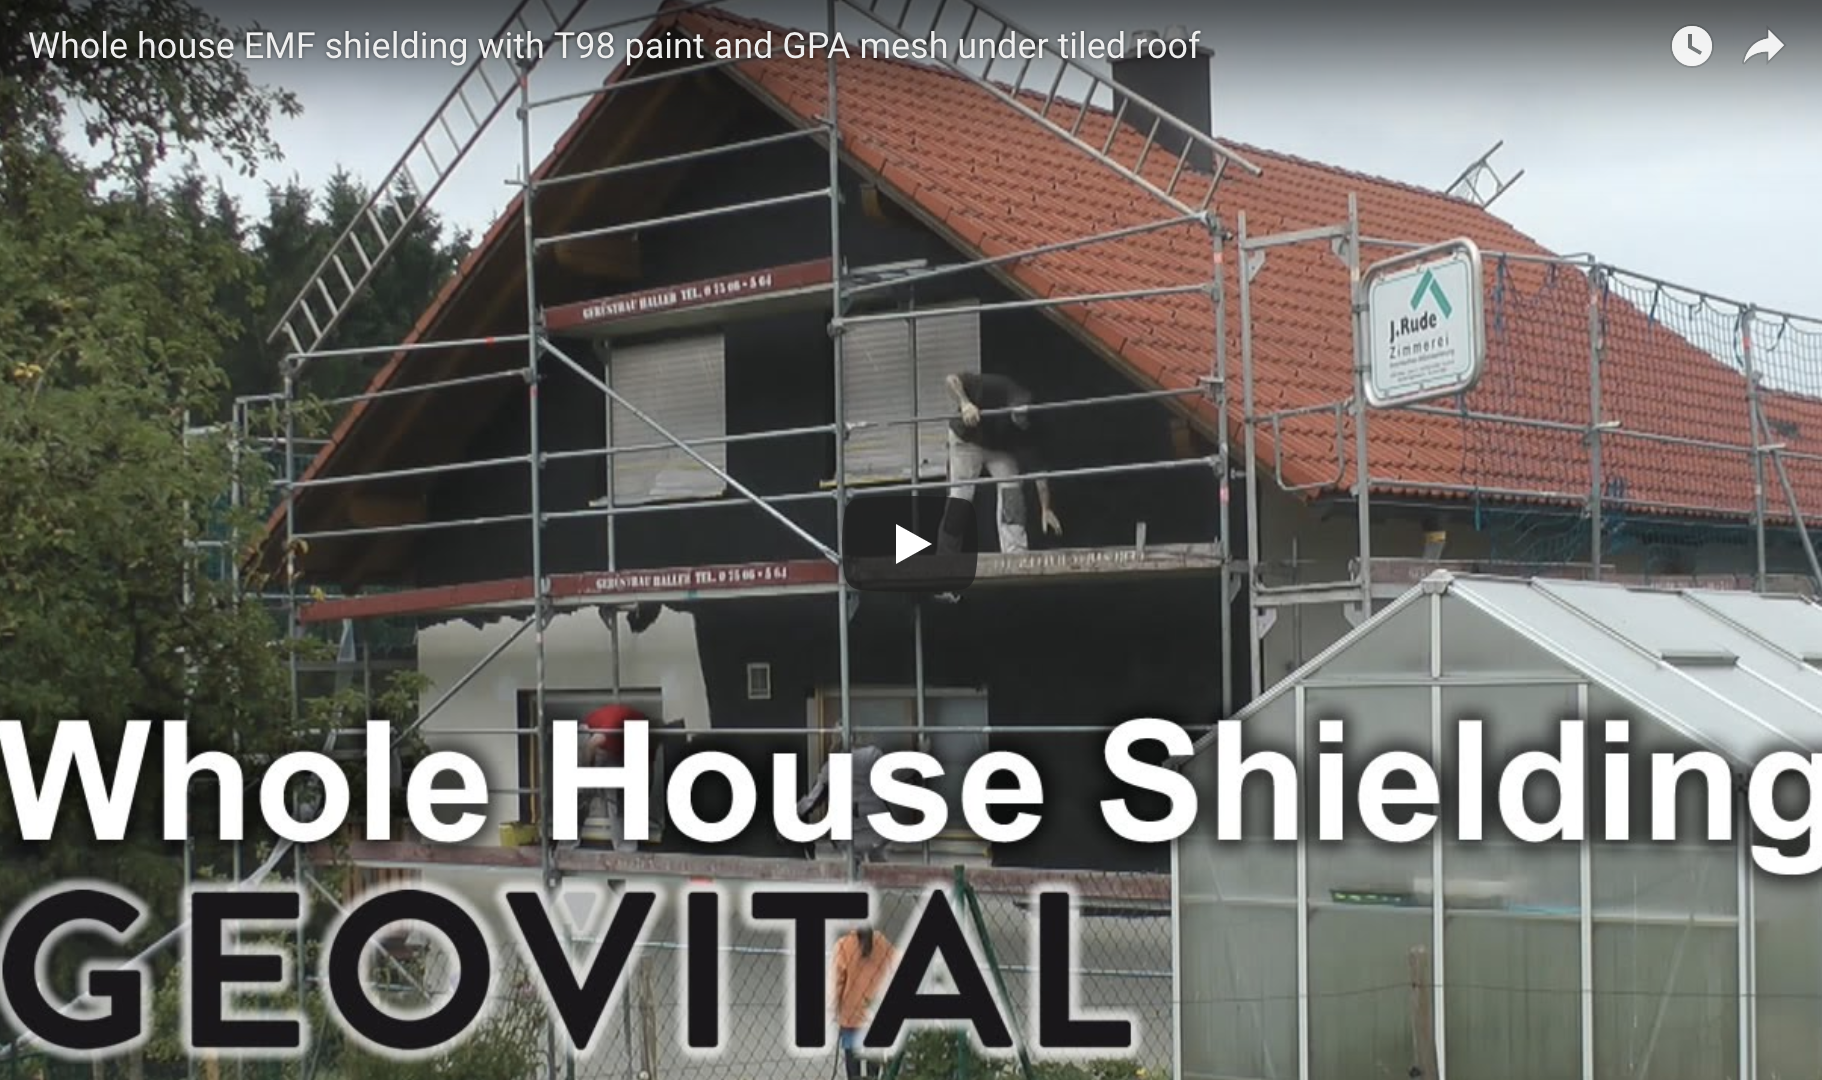 Video – Whole house shielding with T98 paint and GPA mesh under